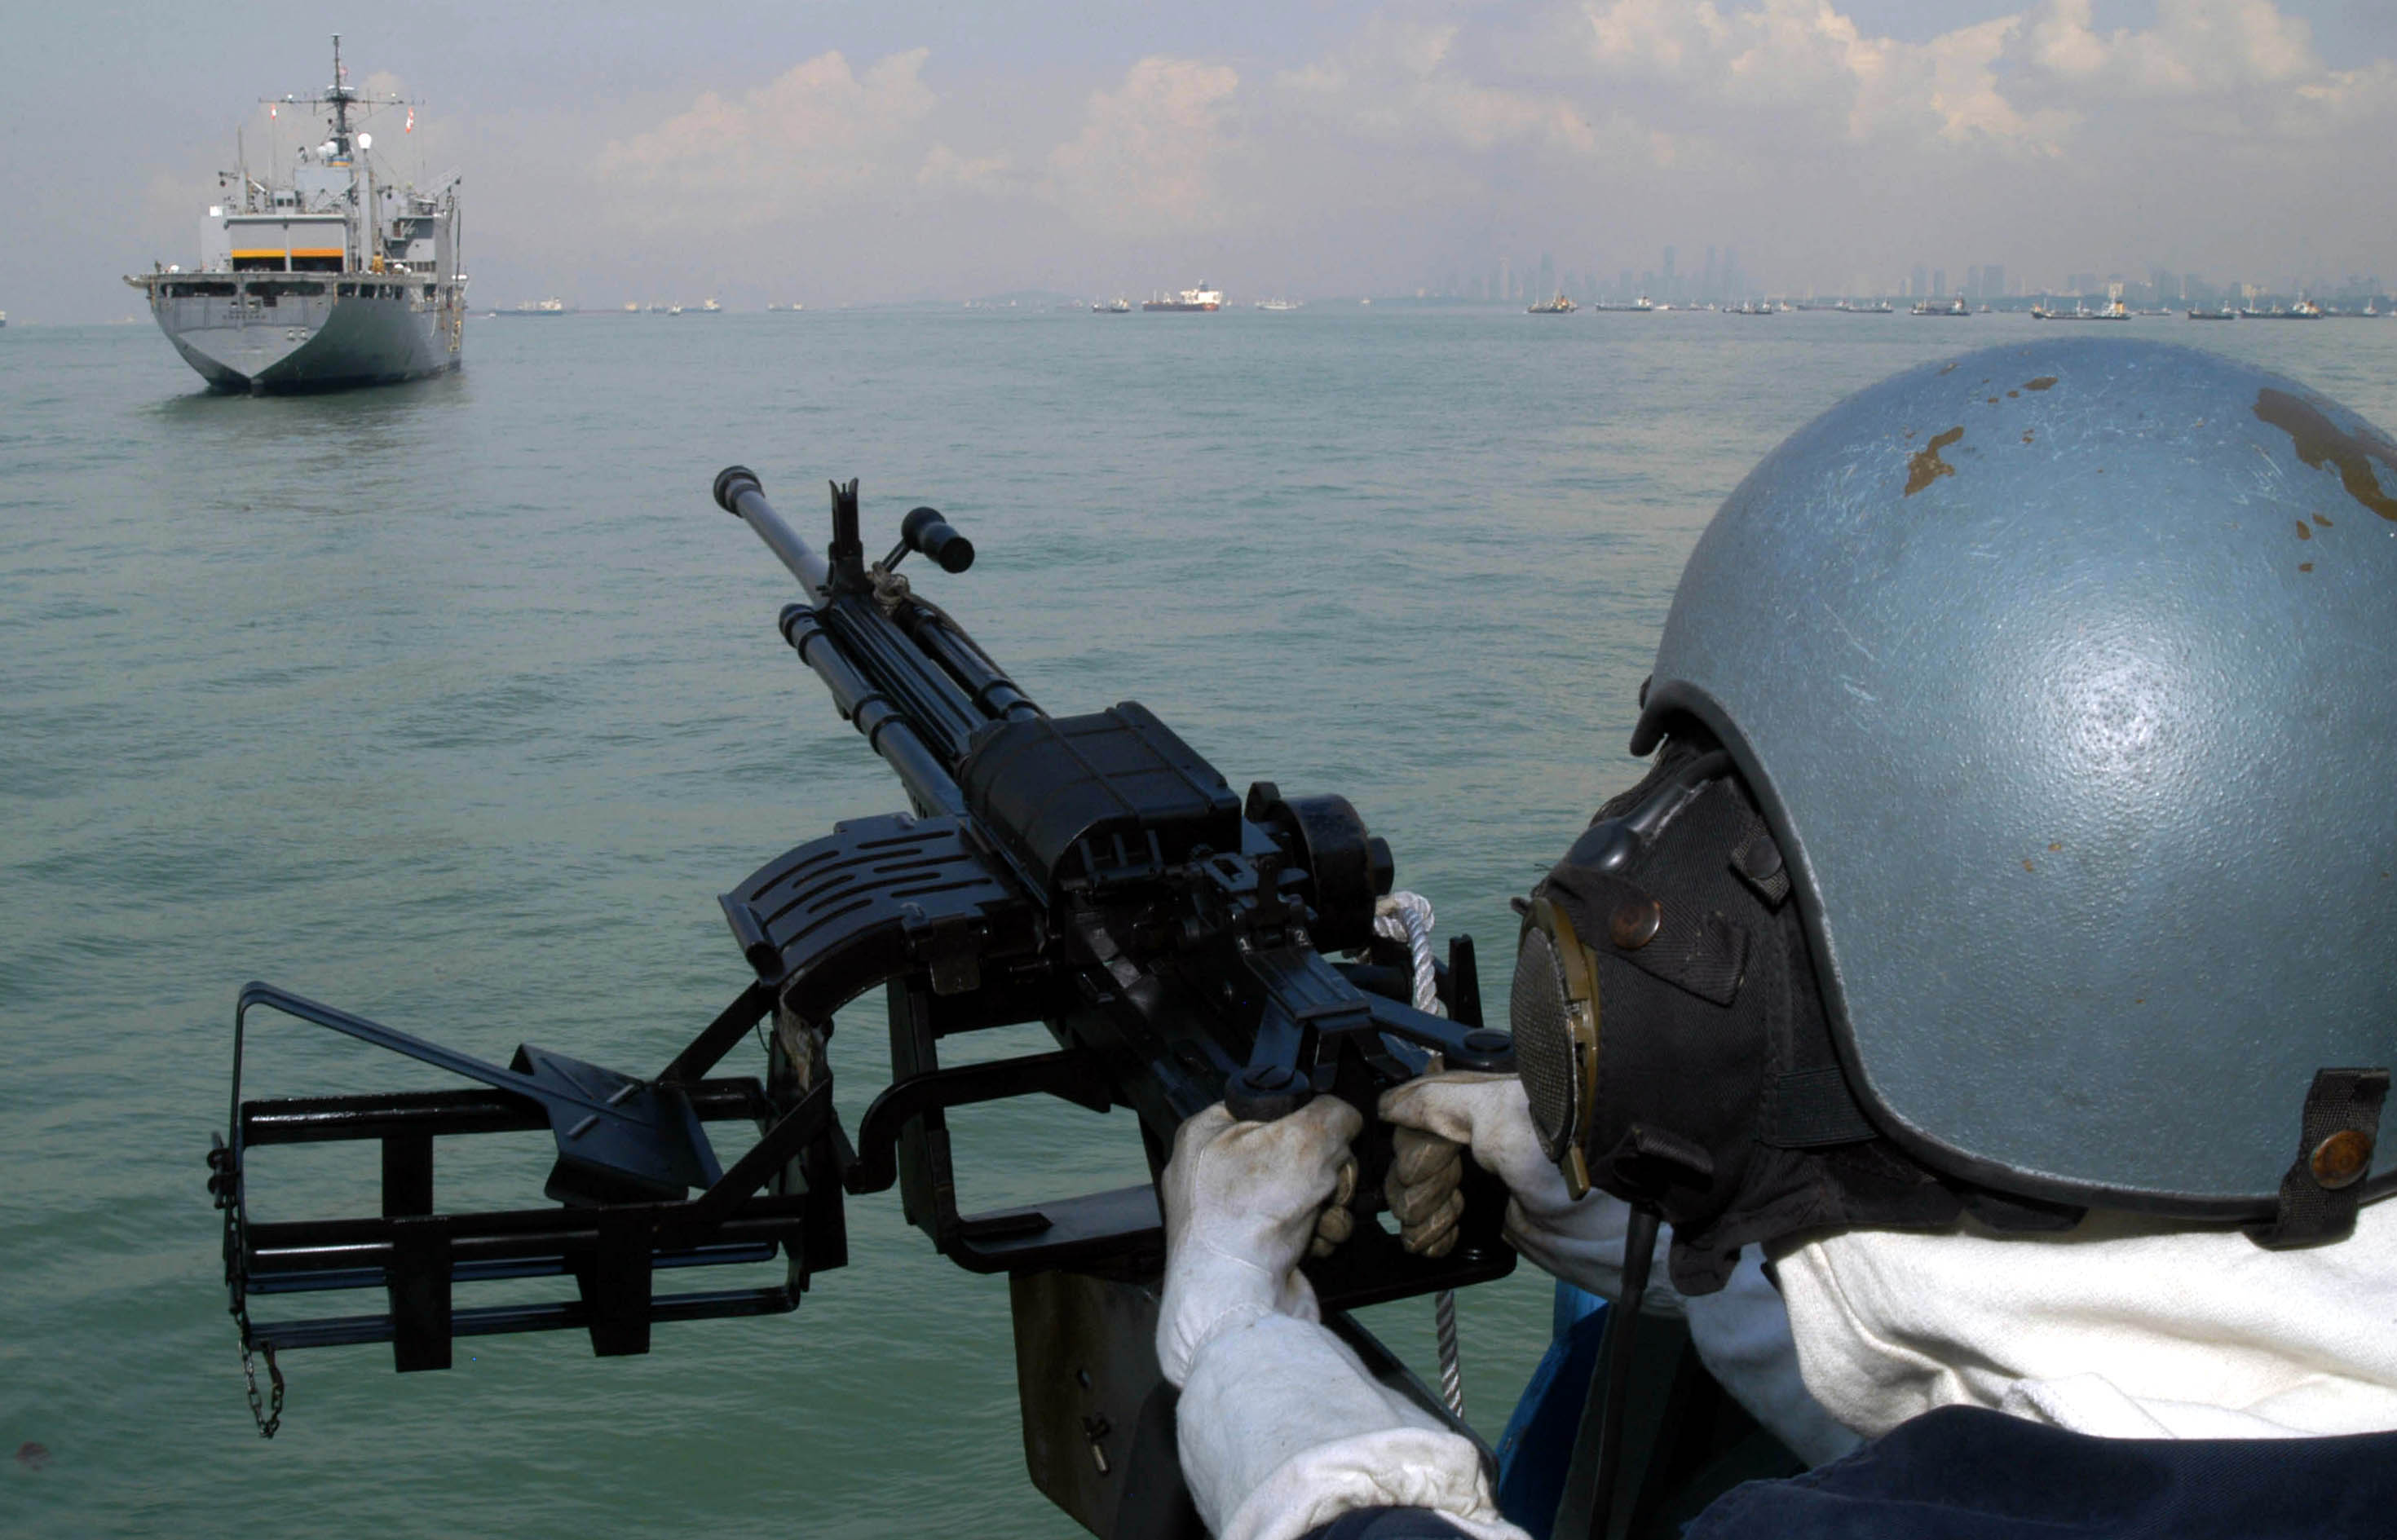 Fileus Navy 040526 N 7906b 107 A Republic Of Singapore Rsn Attached Files Image 3 Jpg File Size 5 Kb Views Gunner Assigned To The Patrol Vessel Rss Resilience Keeps His Sight Trained On